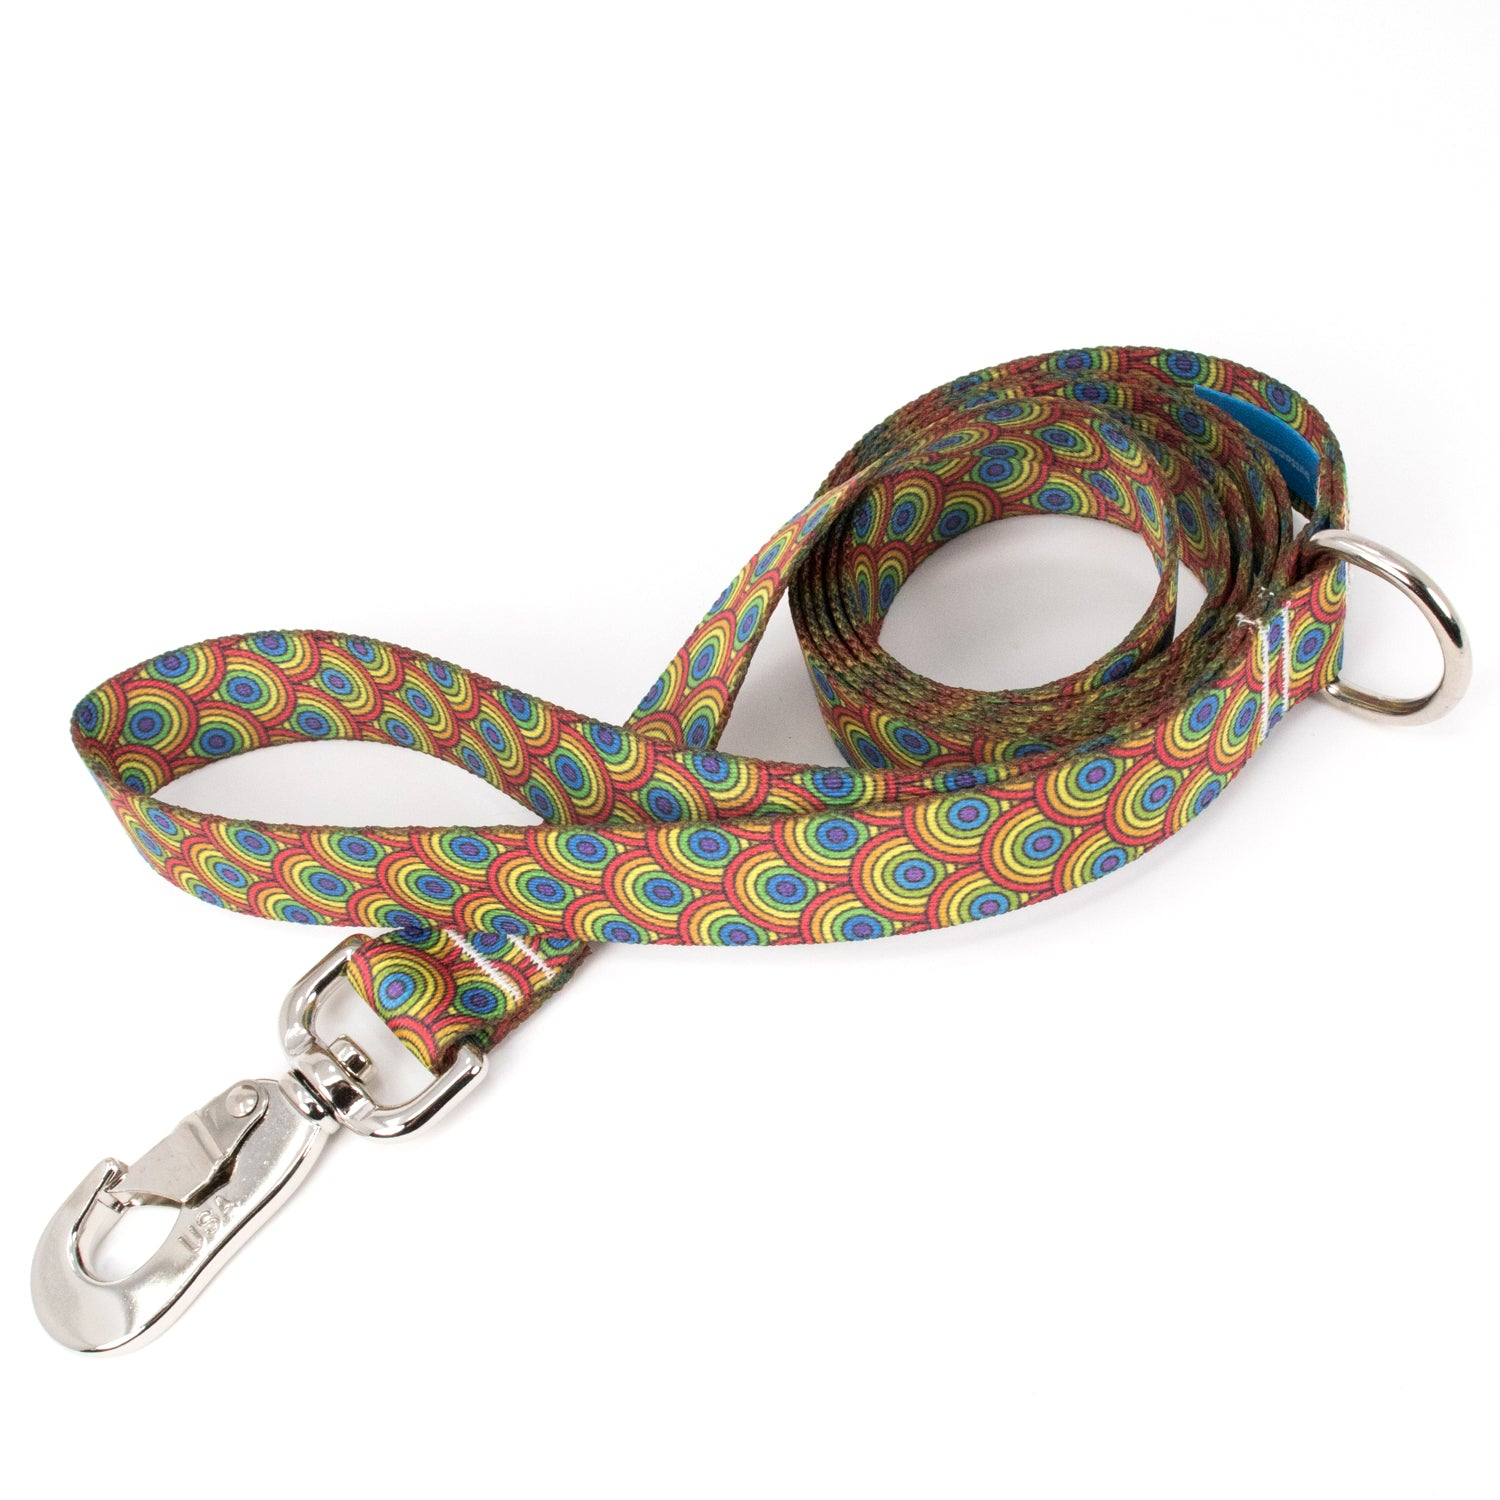 Buttonsmith Rainbow Arches Dog Leash Fadeproof Made in USA